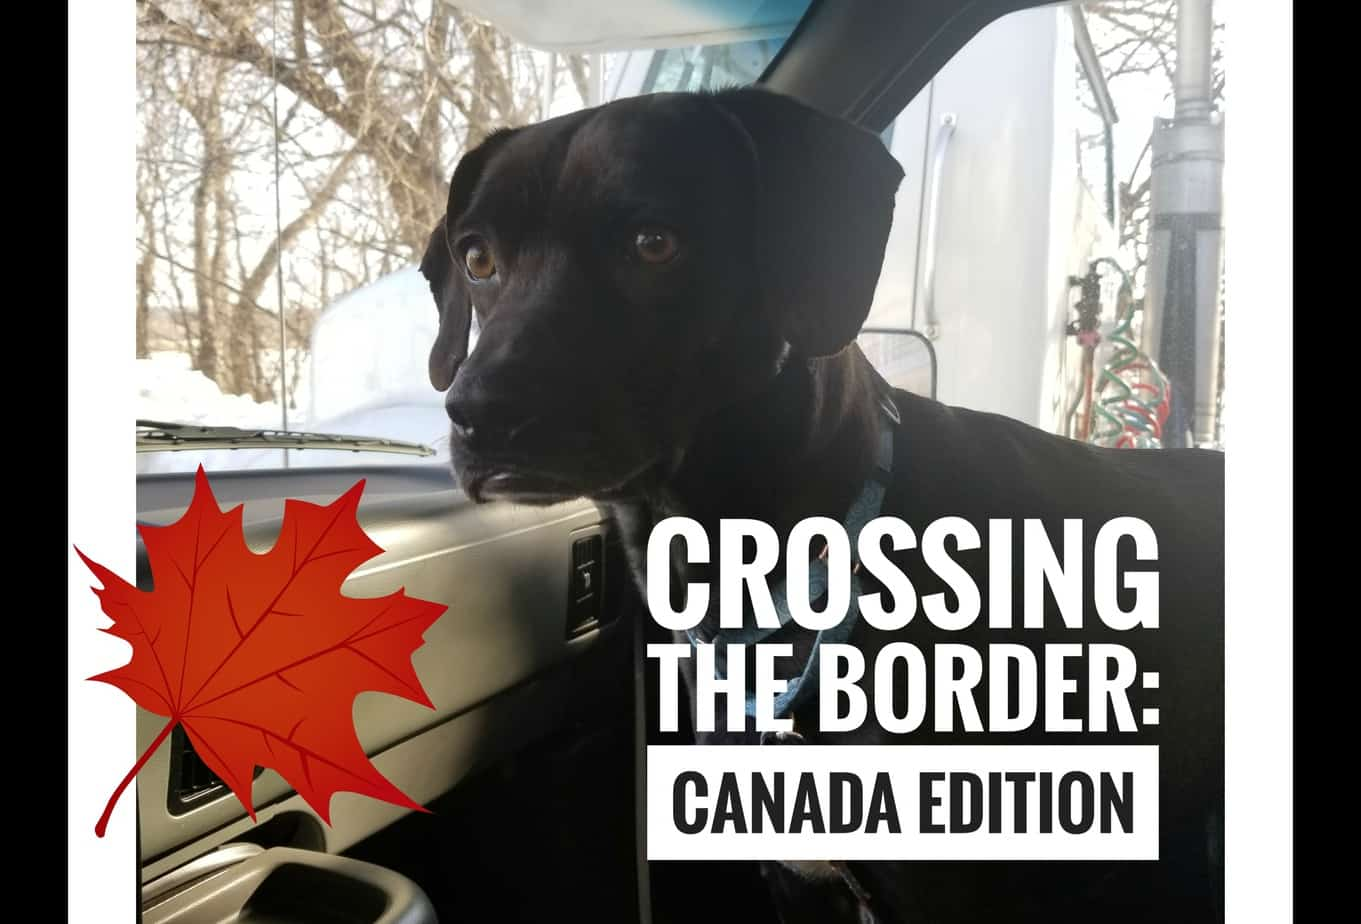 Crossing the Border with Pets: Canada Edition